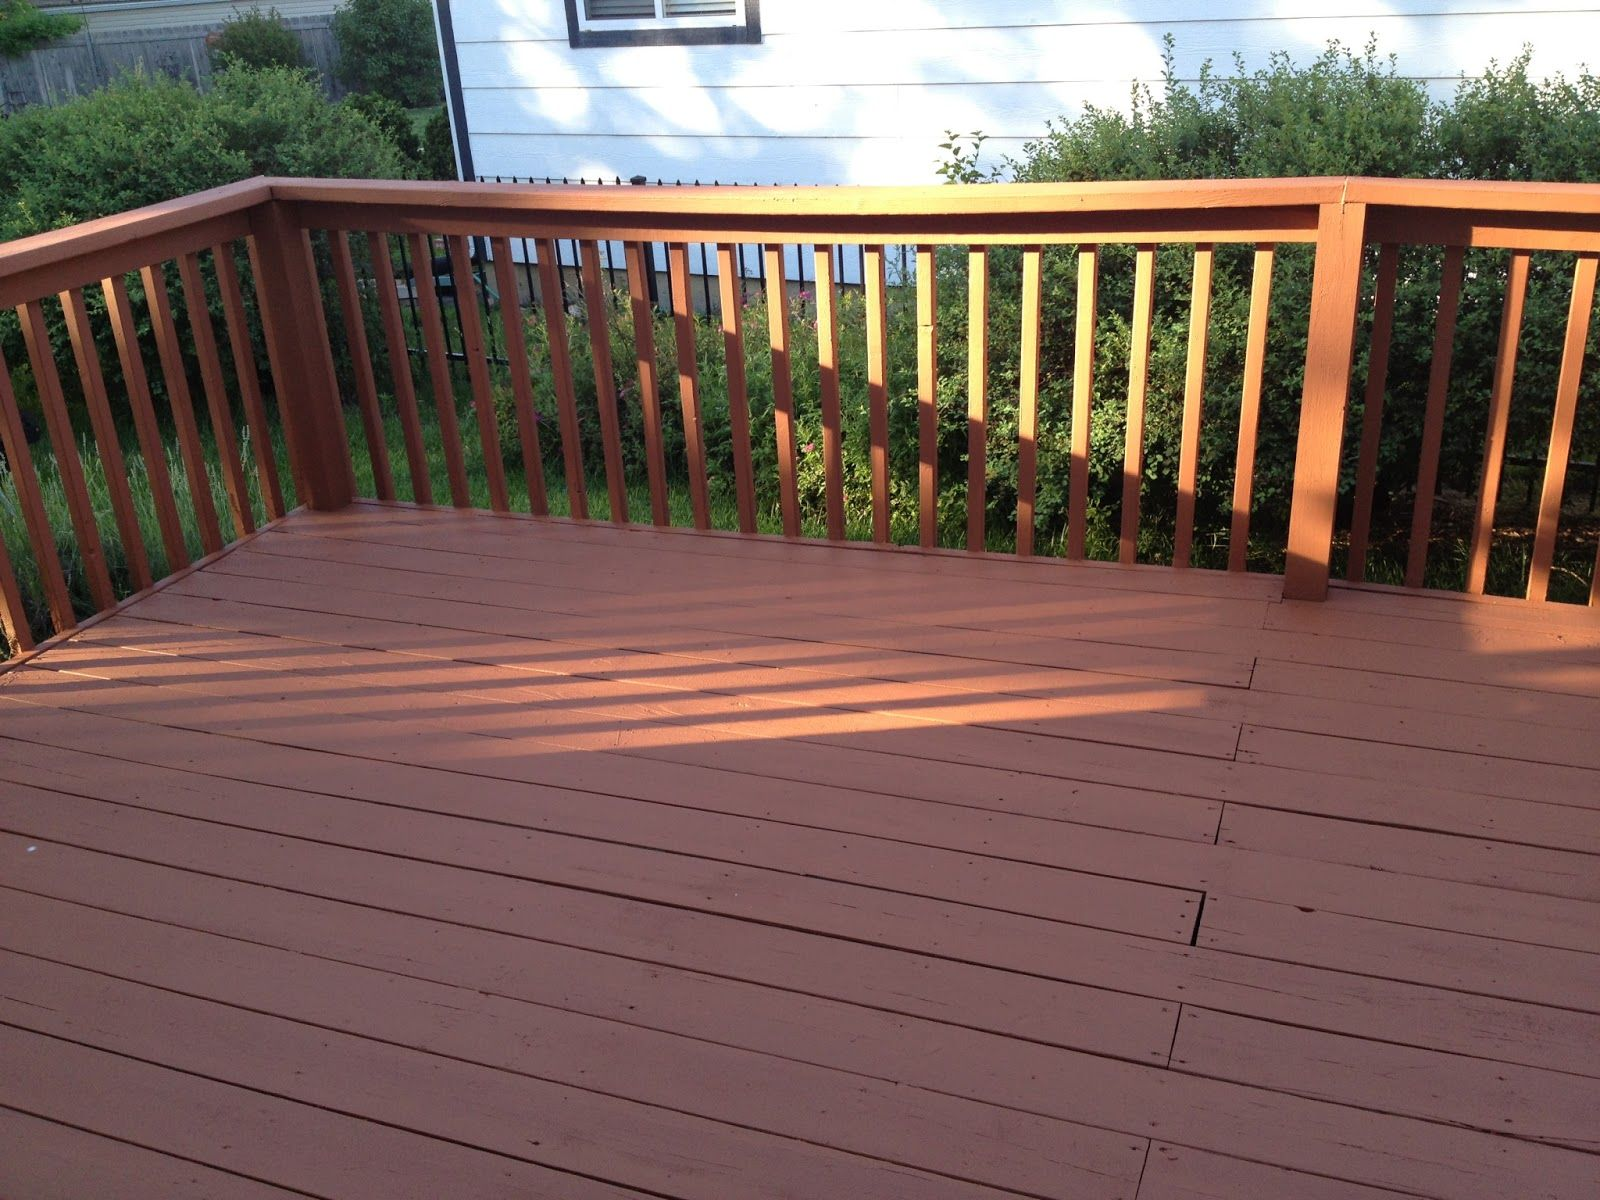 Behr deckover cappuccino solid color behr weatherproof for Deck paint colors home depot